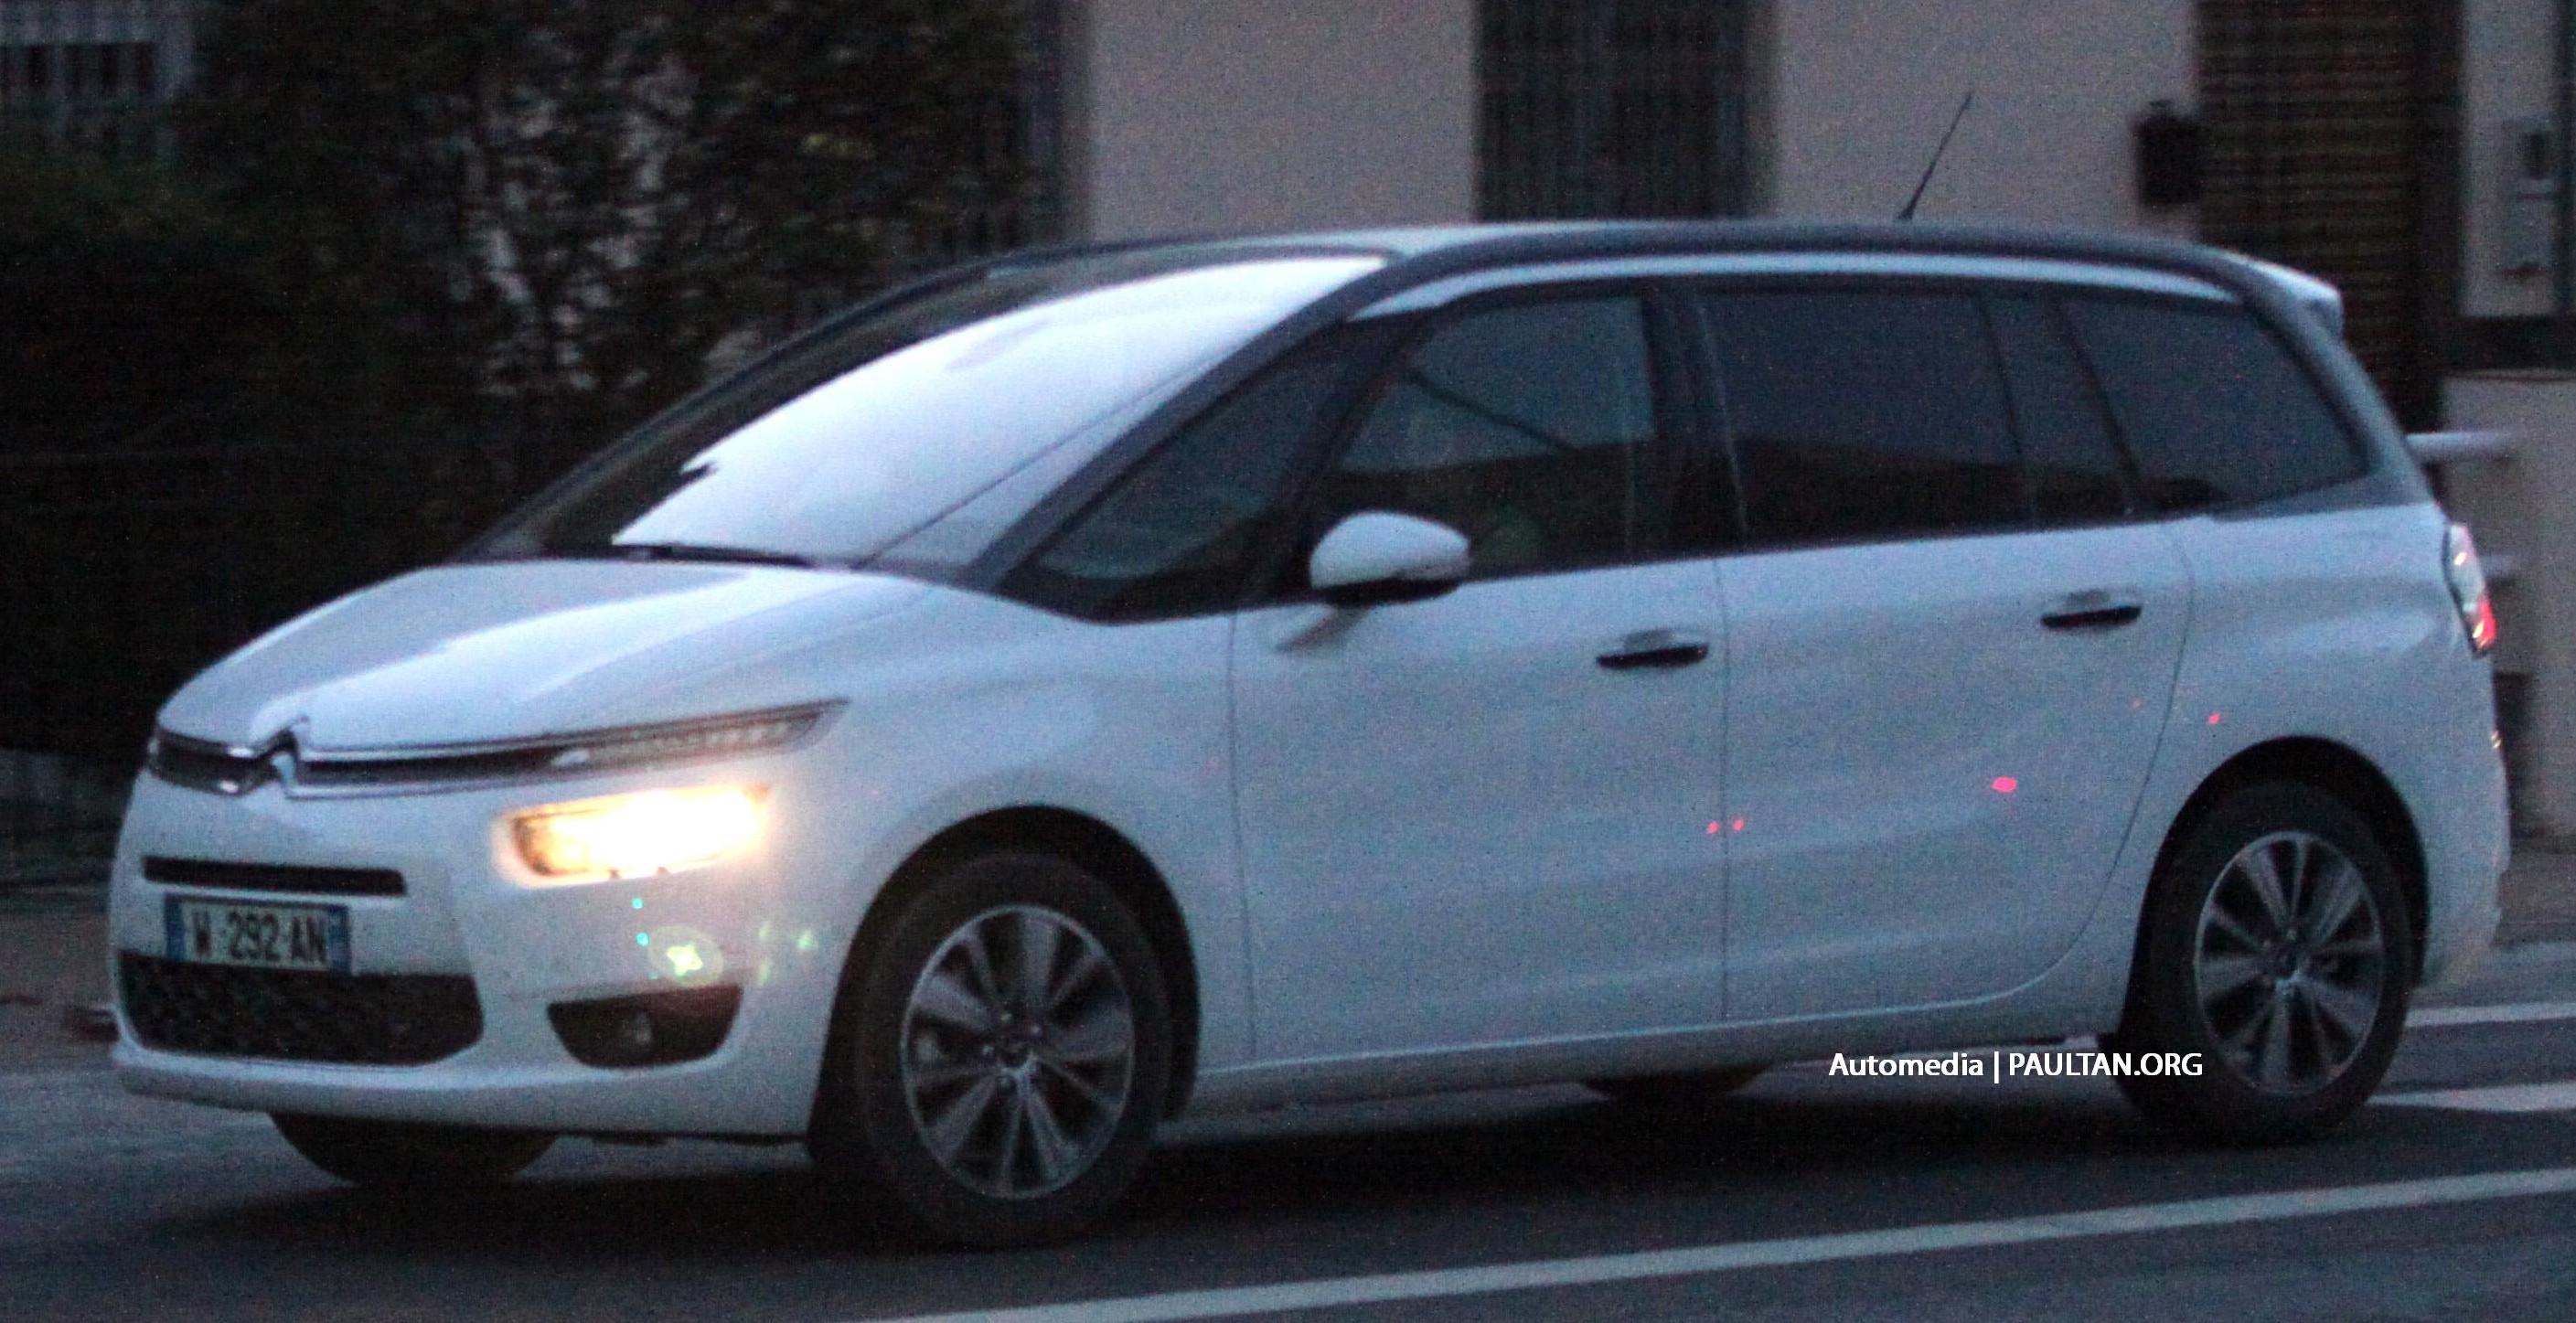 spyshots 2014 citroen grand c4 picasso in europe image 182364. Black Bedroom Furniture Sets. Home Design Ideas